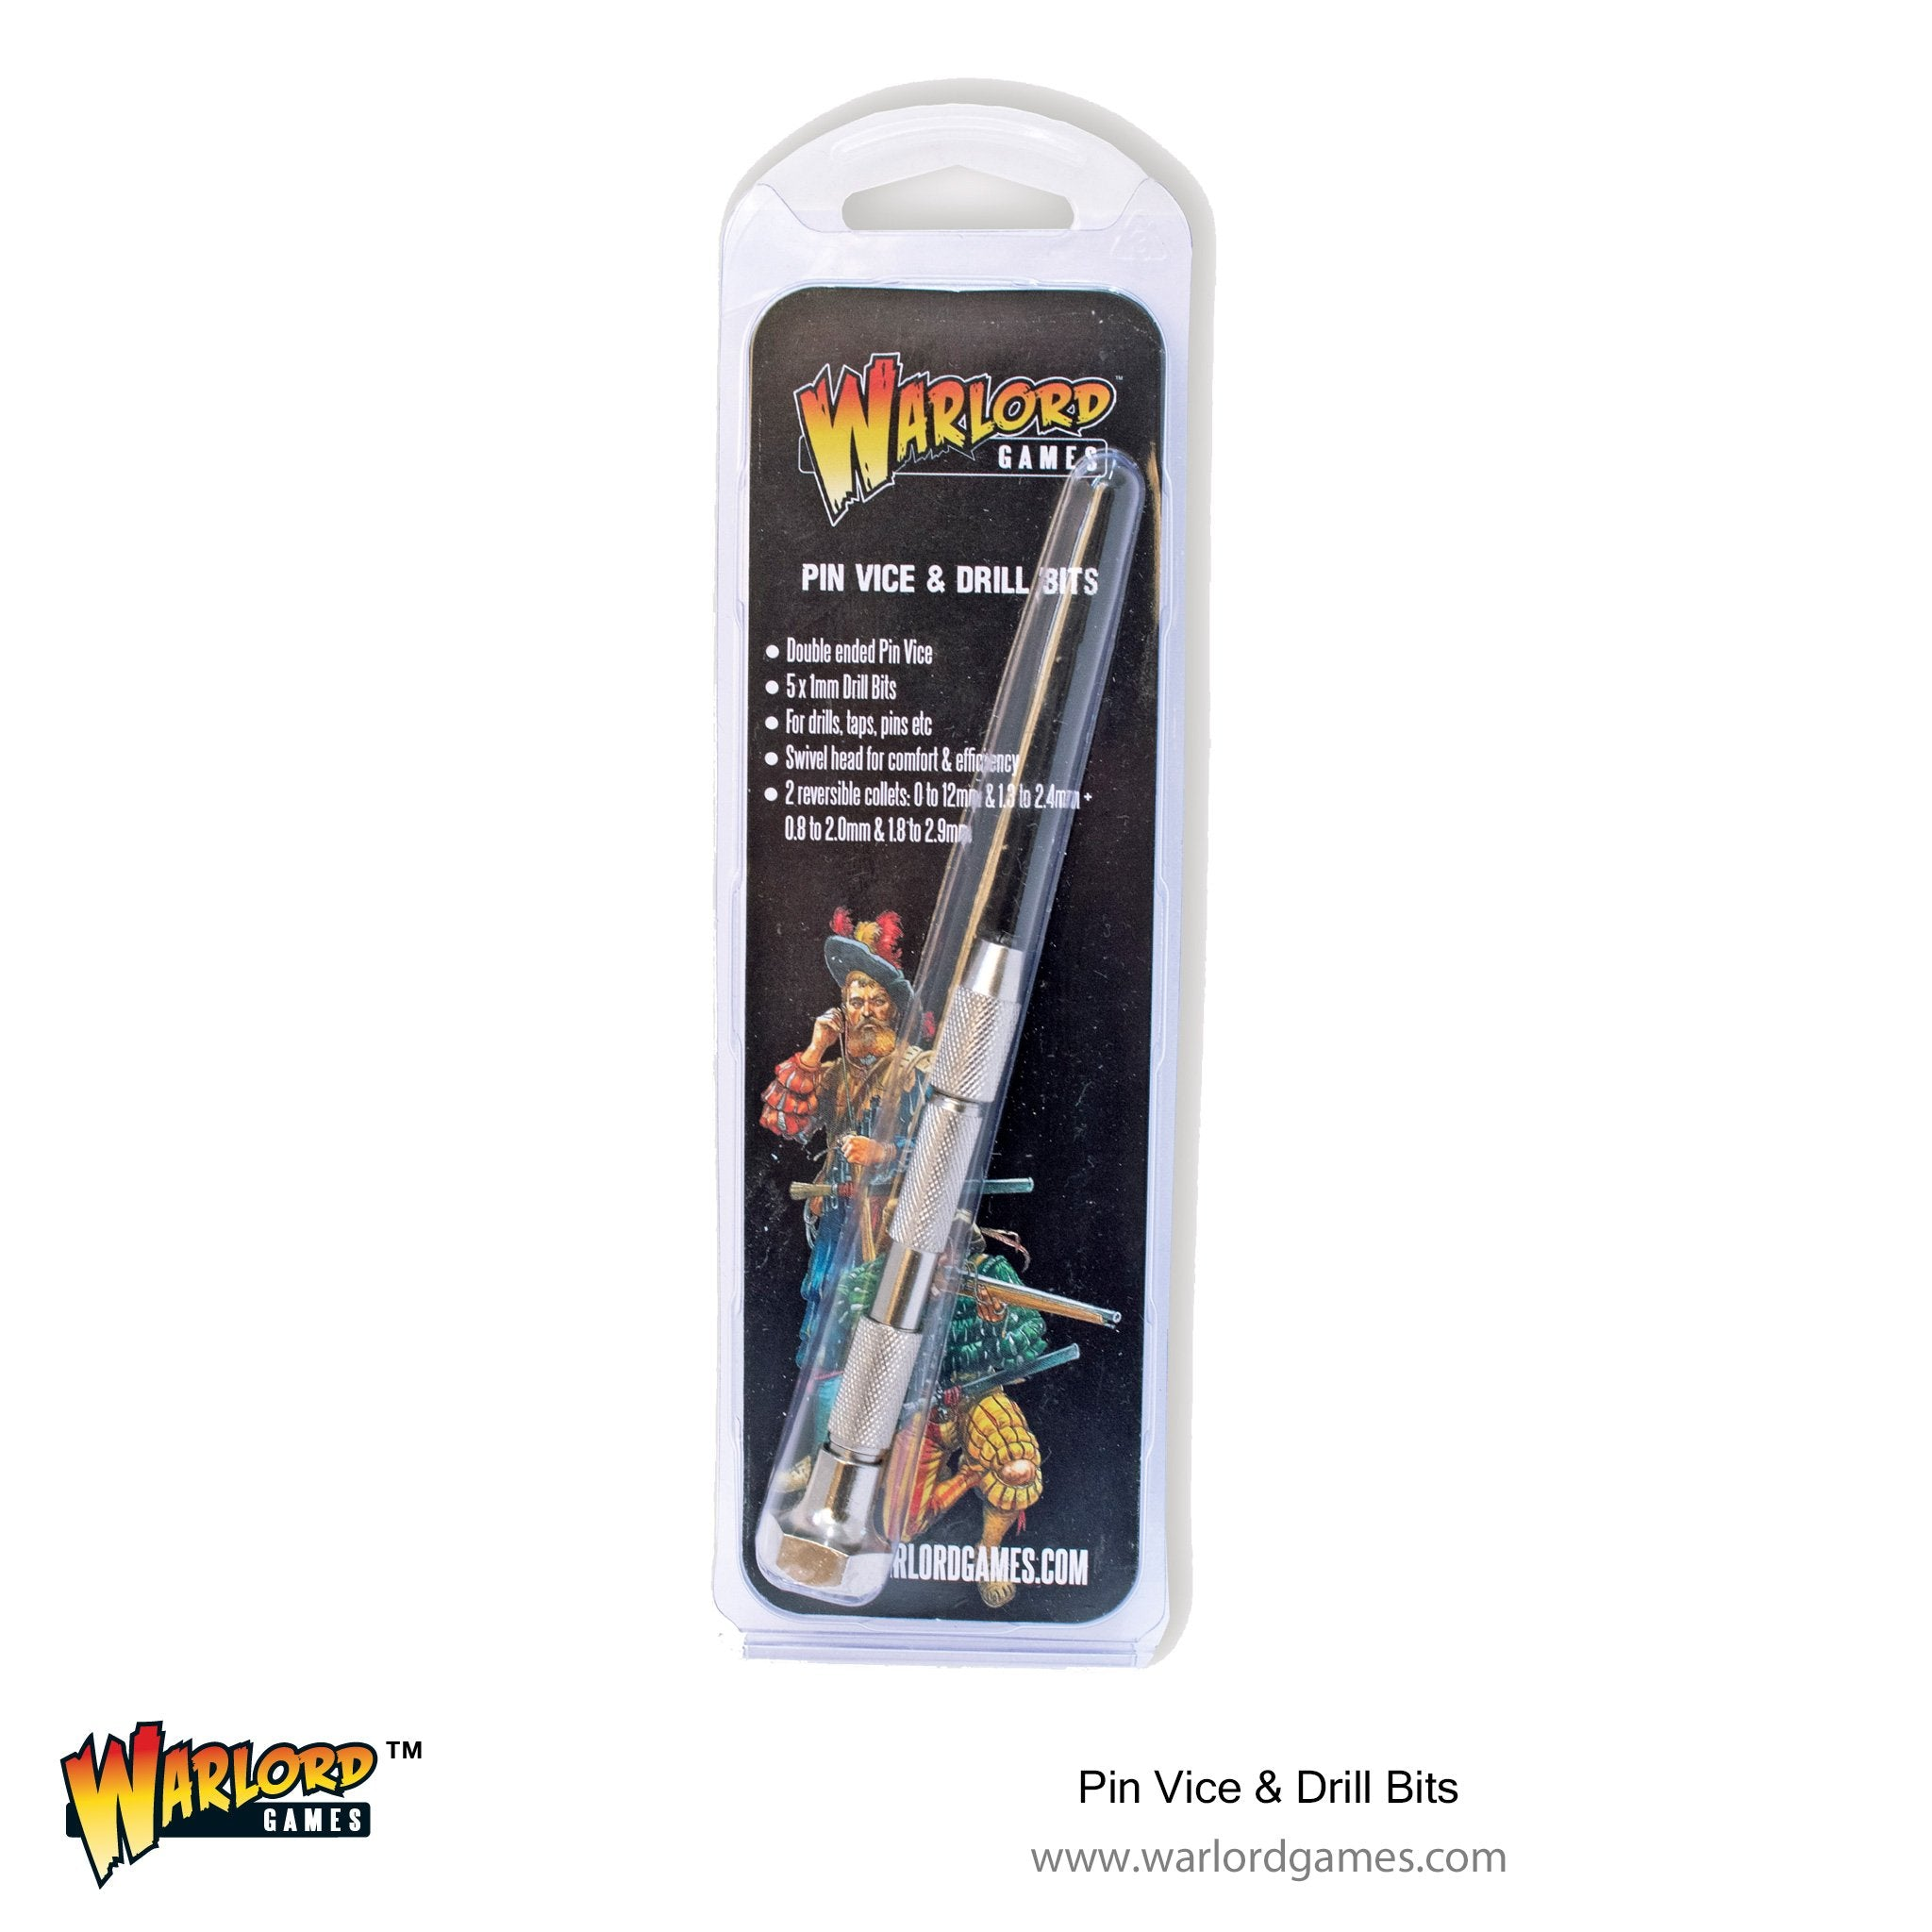 Warlord Pin Vice and Drill Bits